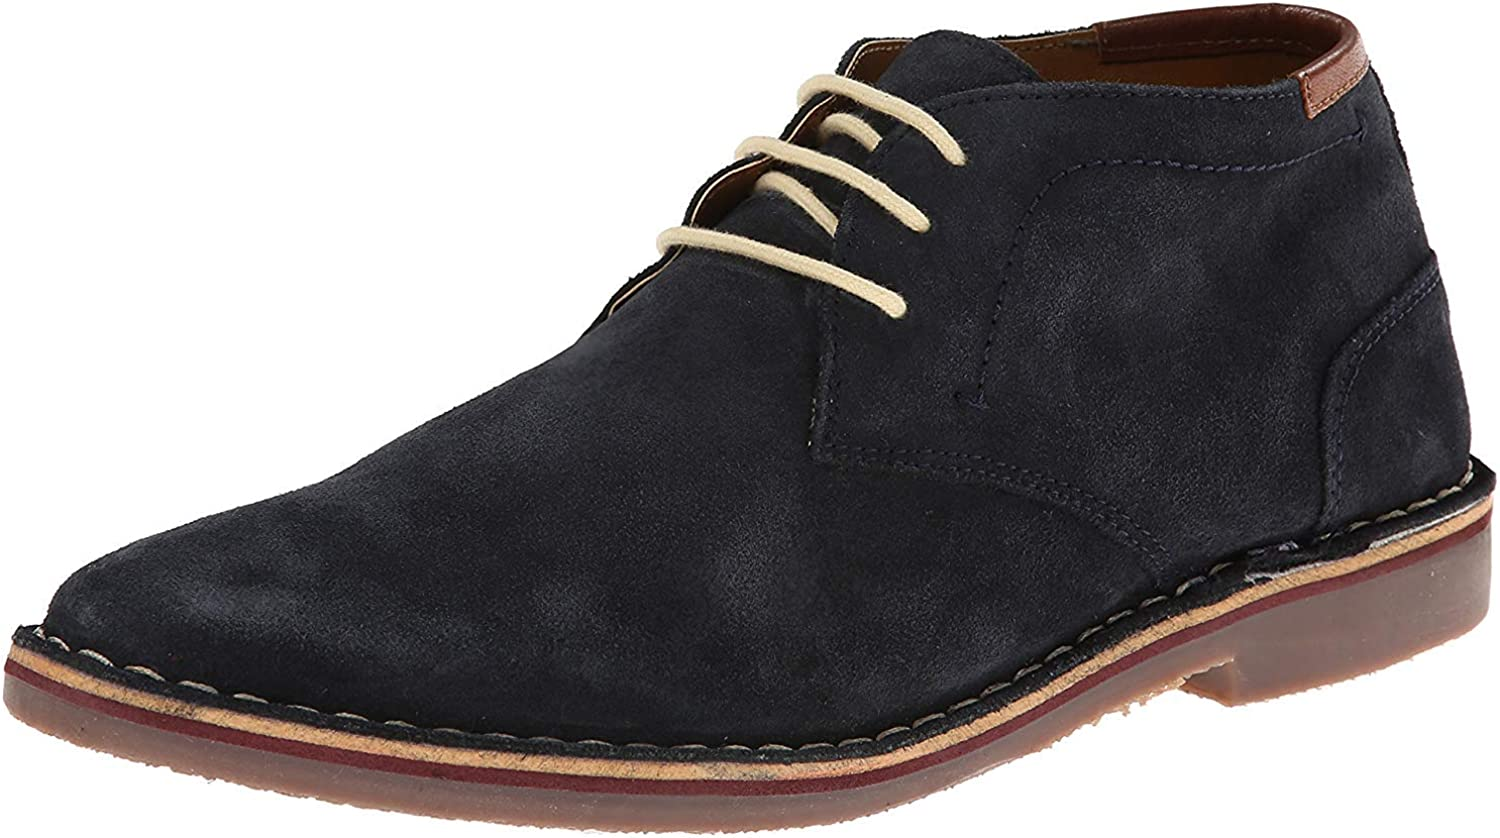 Kenneth Cole Reaction Mens Passage Open Toe Ankle Fashion Boots